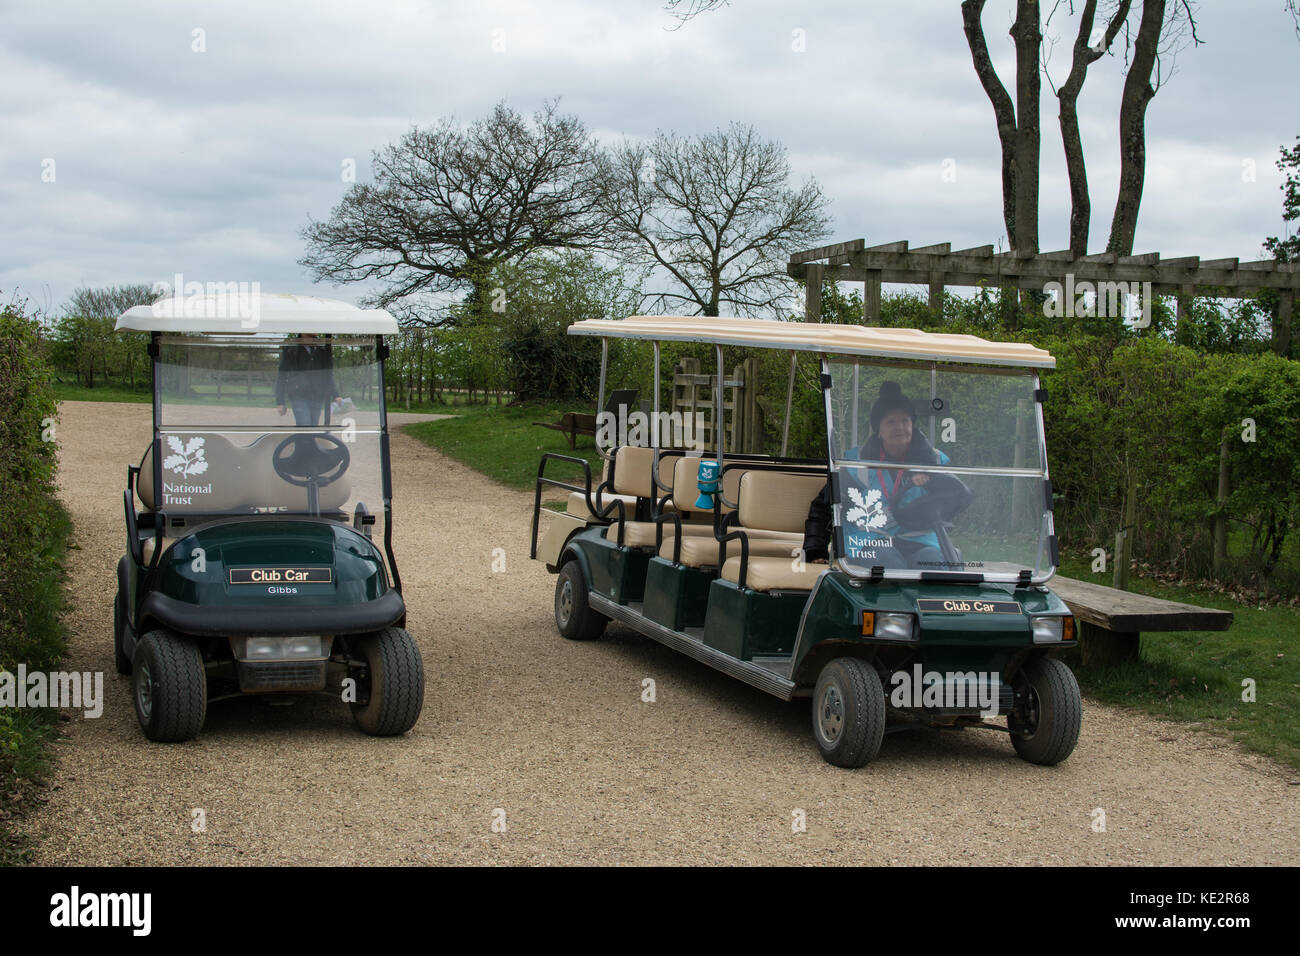 Golf buggy - Stock Image